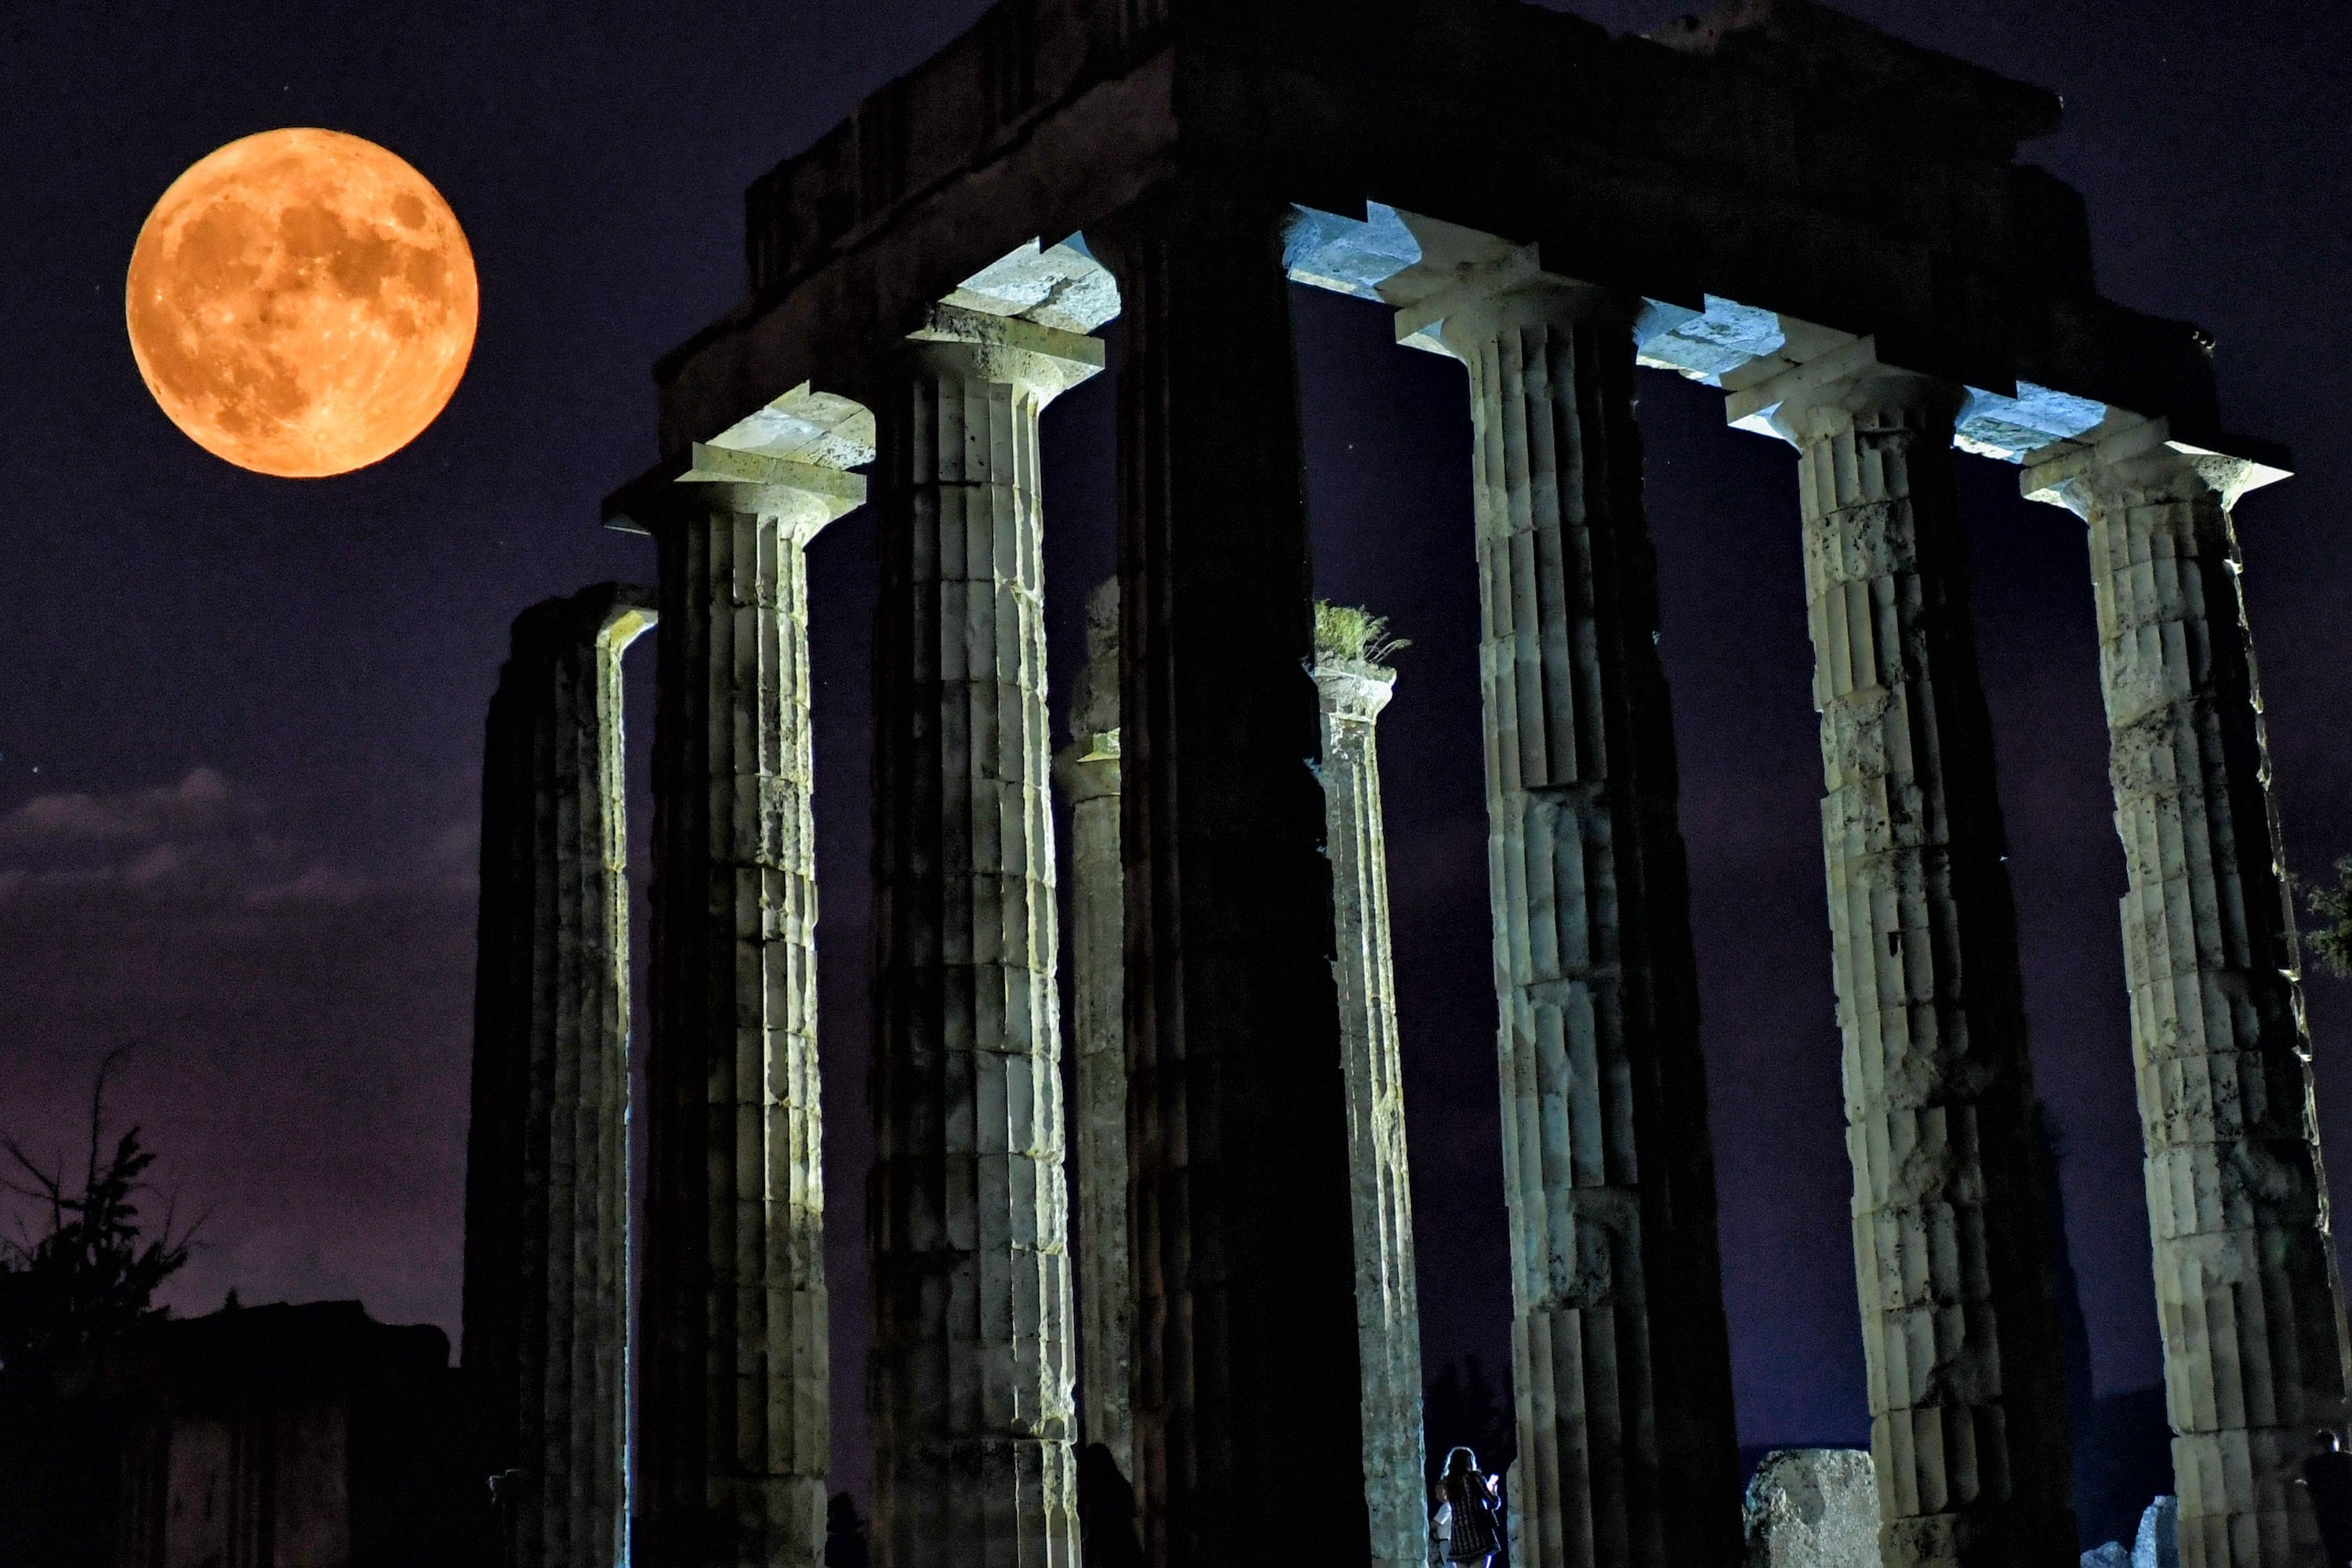 A full orange moon rises over the ruins of a colossal temple with gigantic columns